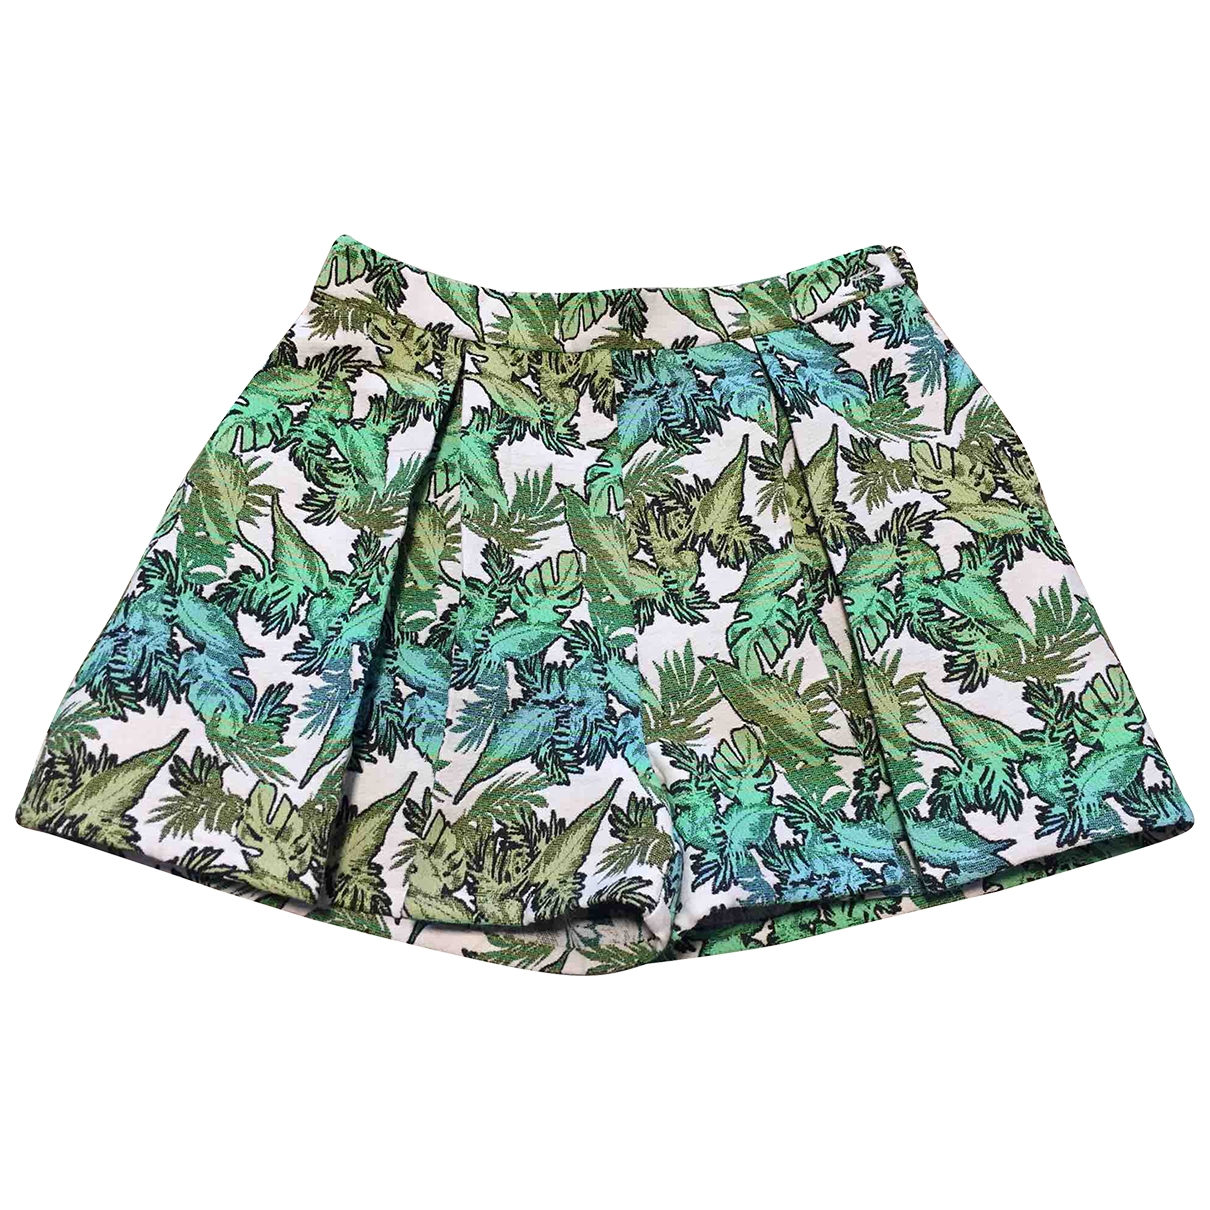 Department 5 \N Green Cotton Shorts for Women S International